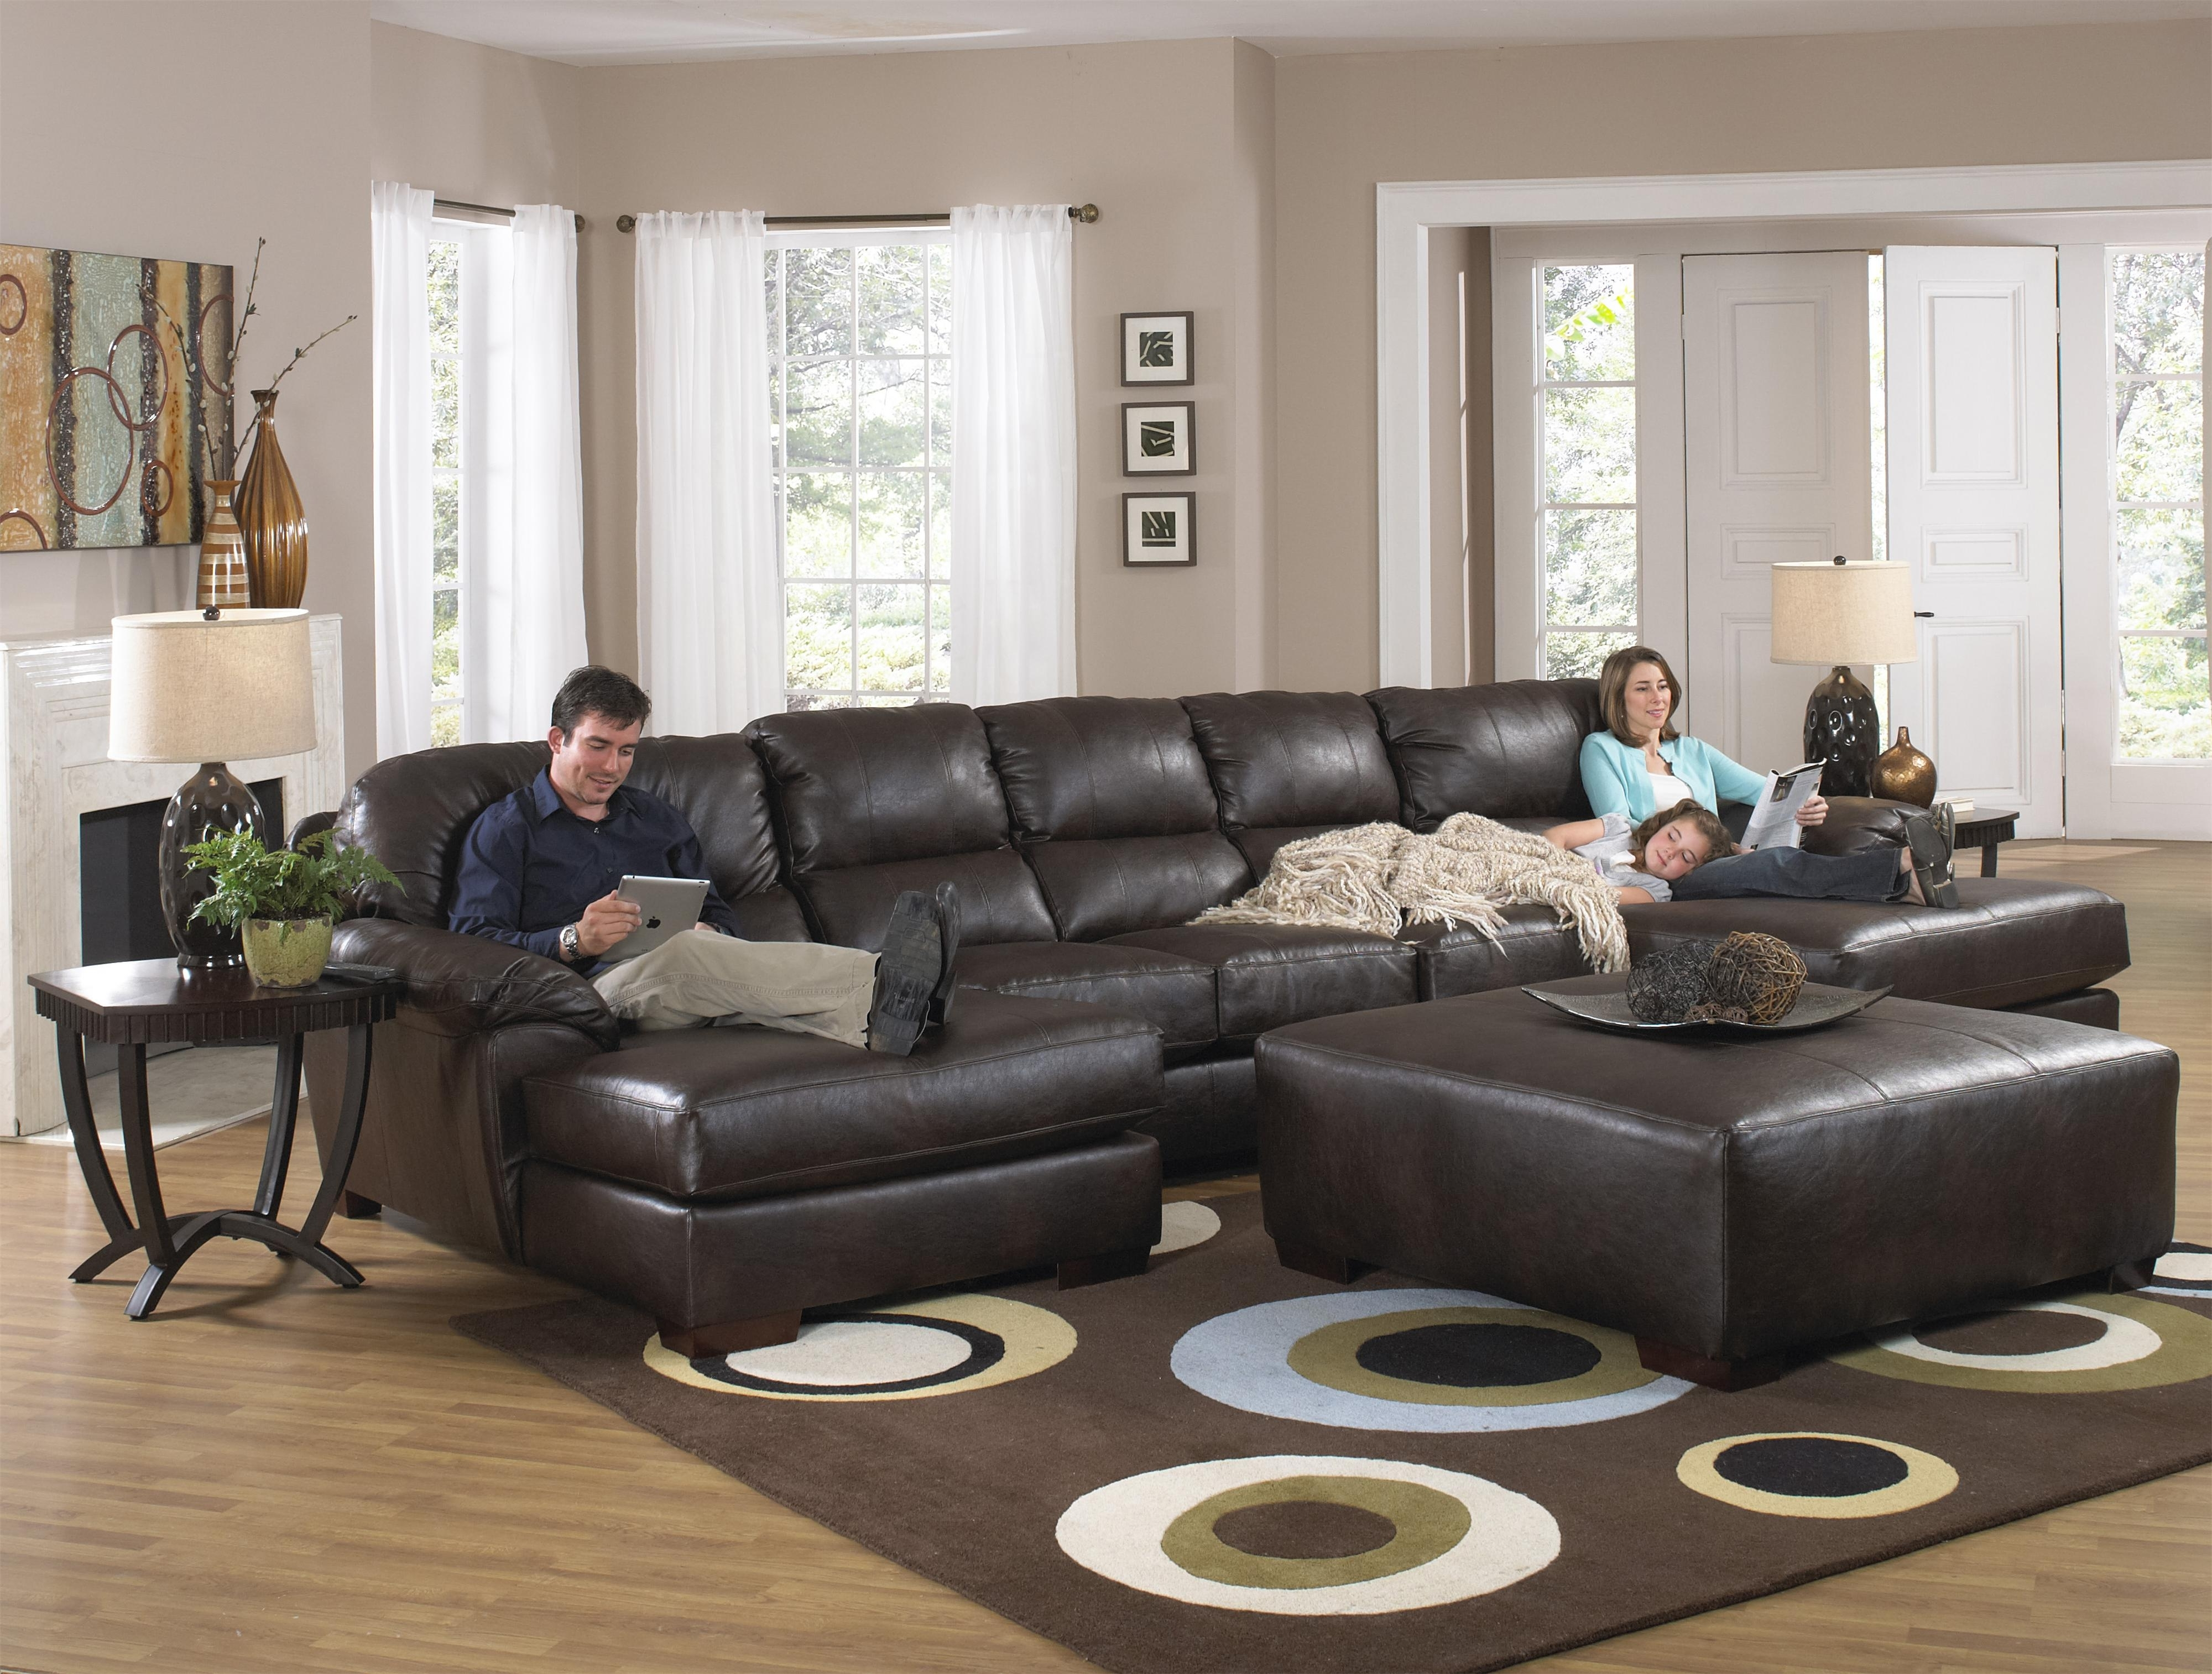 Well Known Deep Sectional Sofas With Chaise Within Extra Deep Sectional Sofa Extra Large Sectional Sofas With Chaise (View 8 of 15)